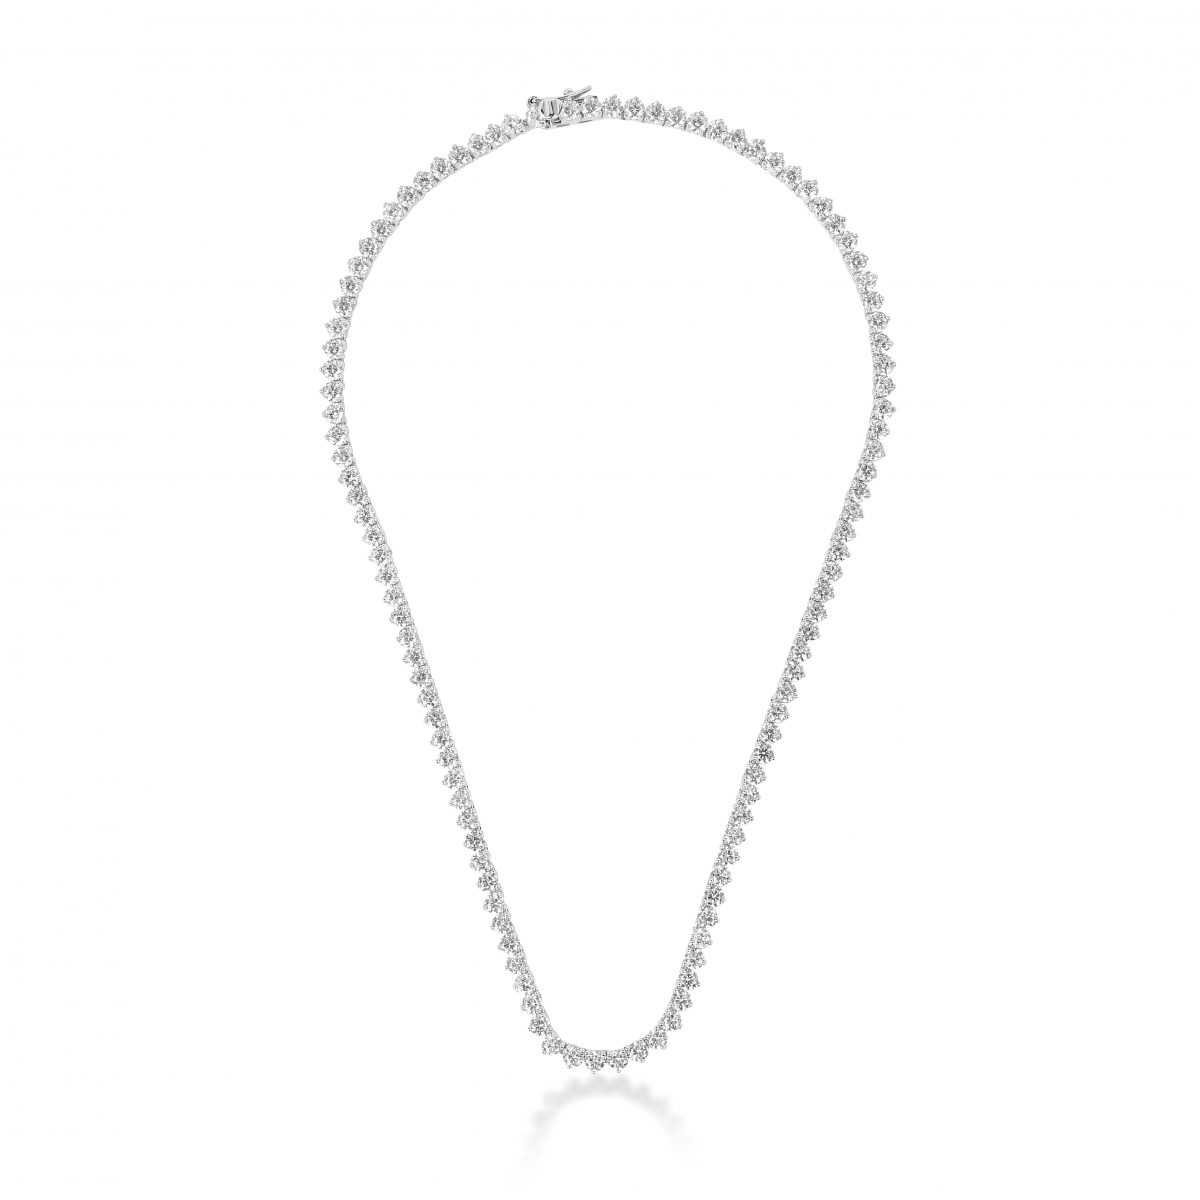 All Time Silver Necklace - High Street Jewelry